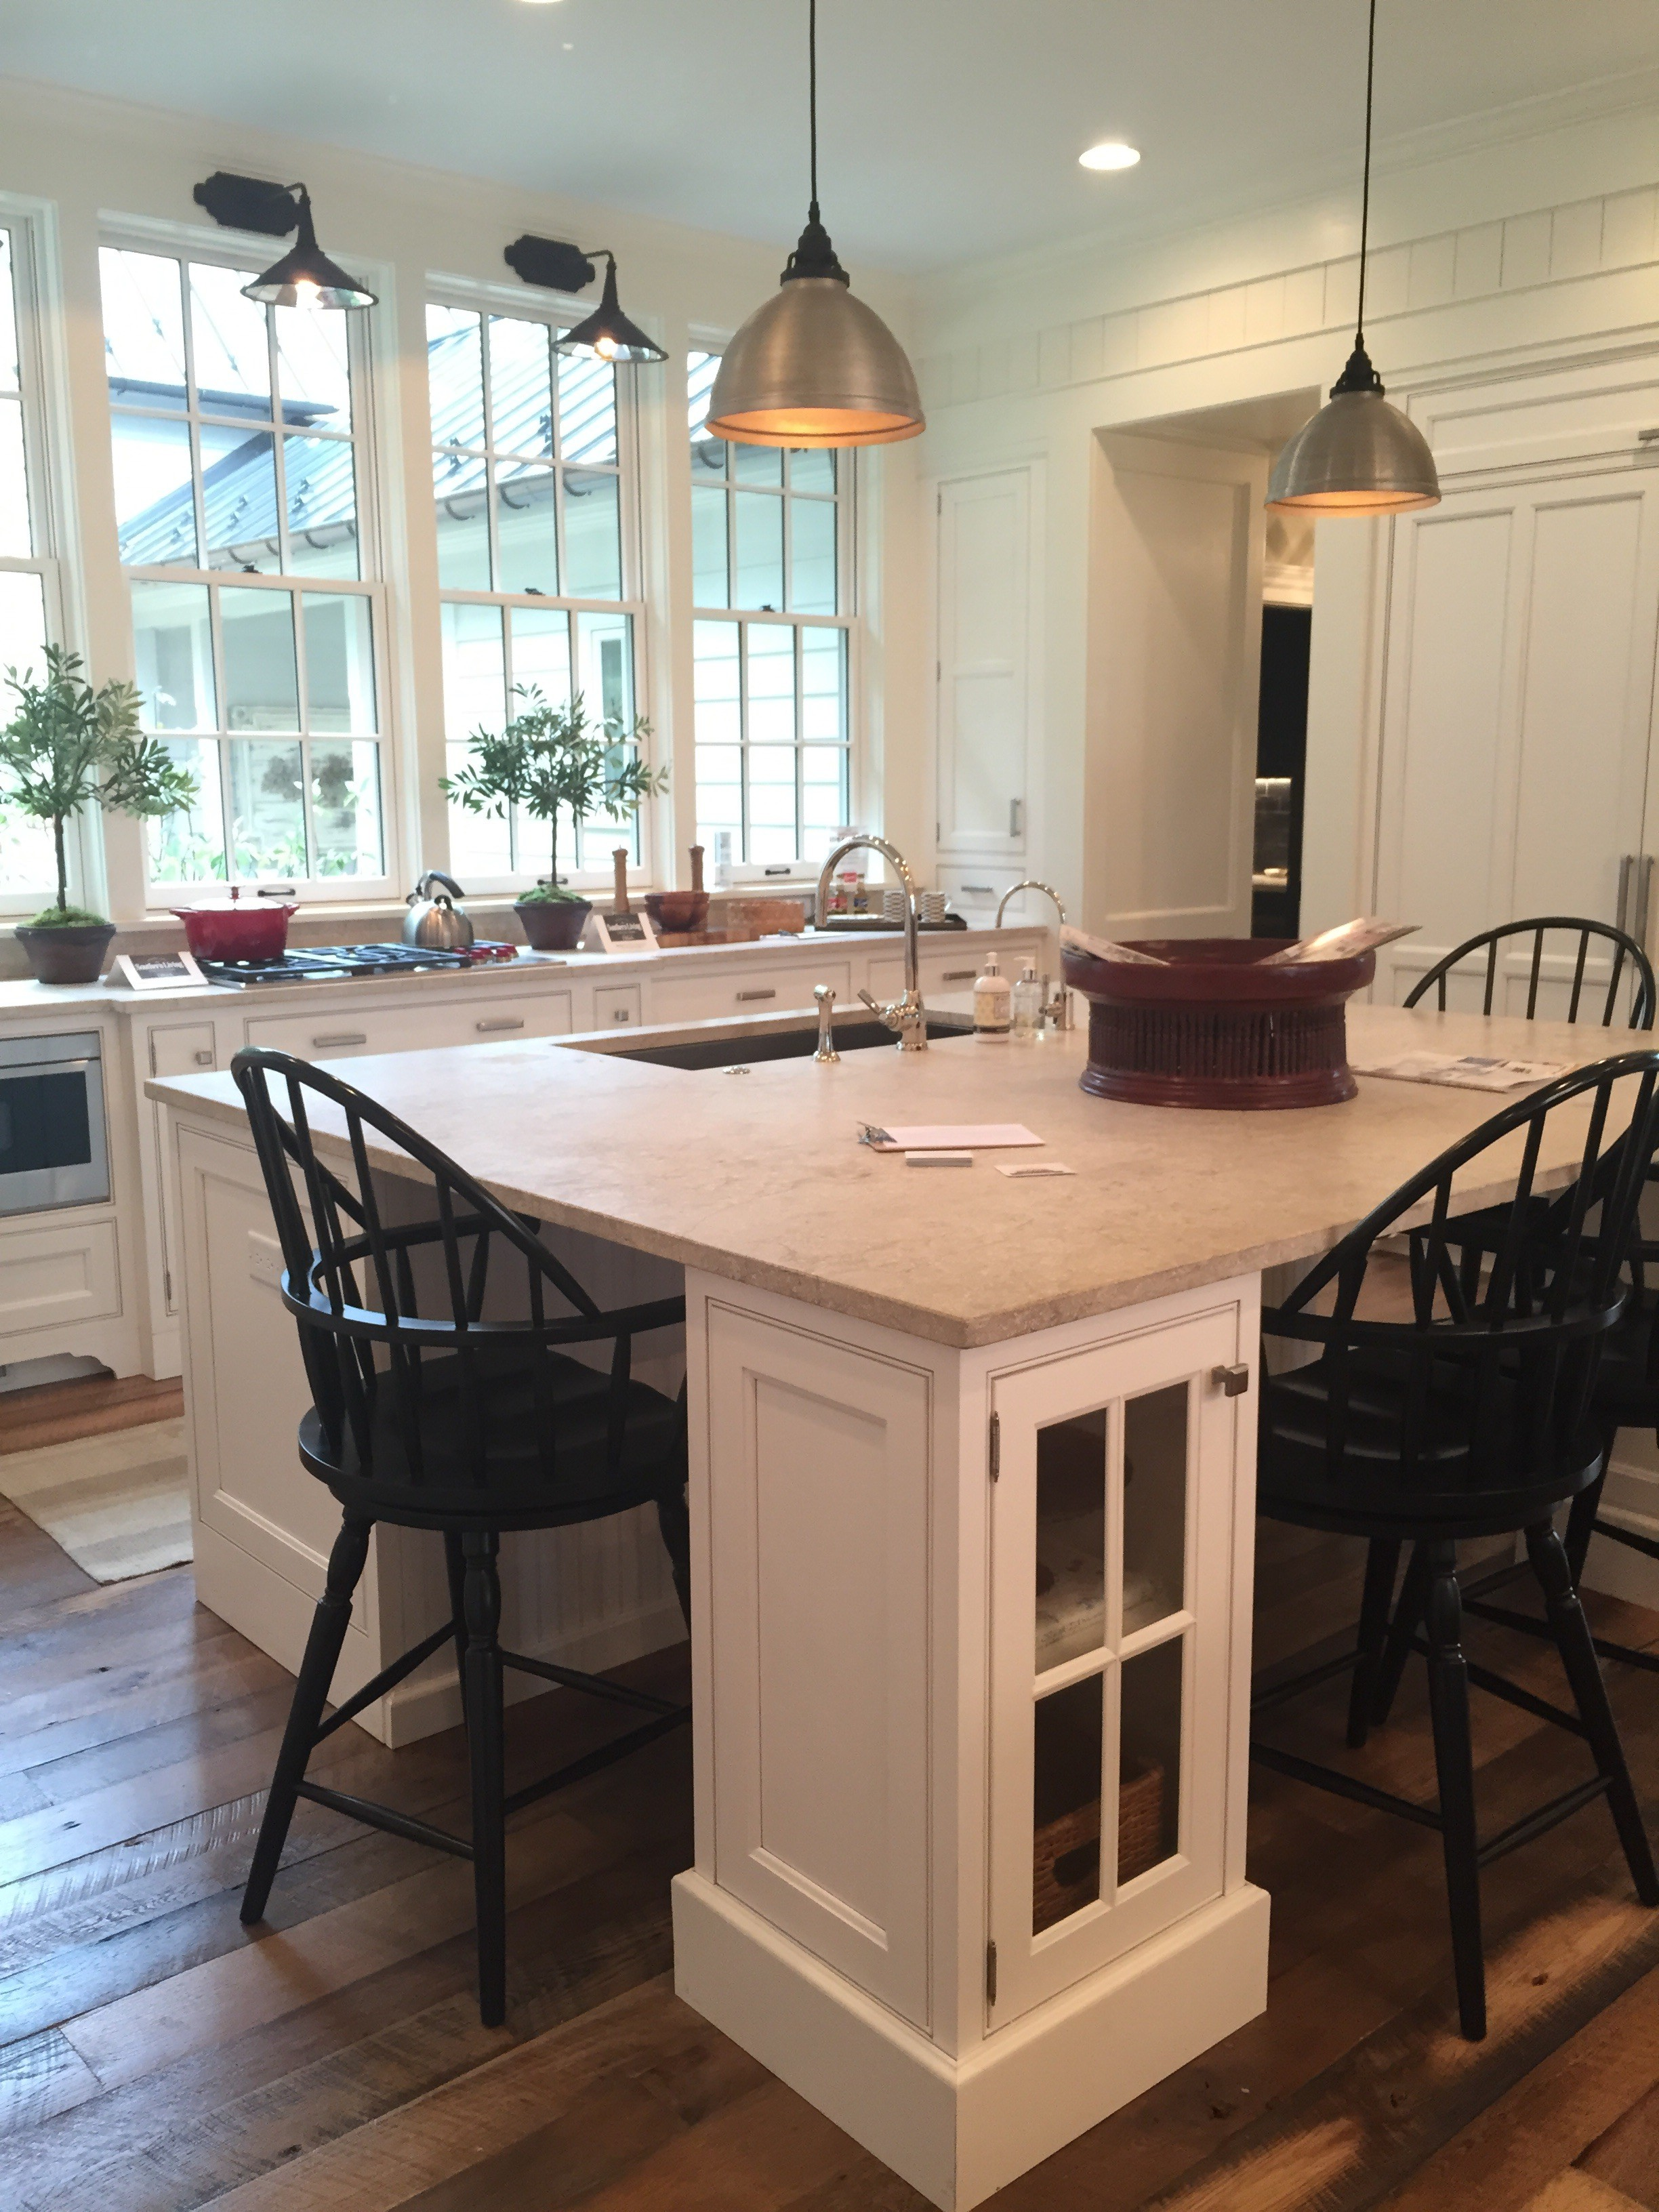 Southern Living Kitchen 2015 Southern Living Idea House Tour Part 2